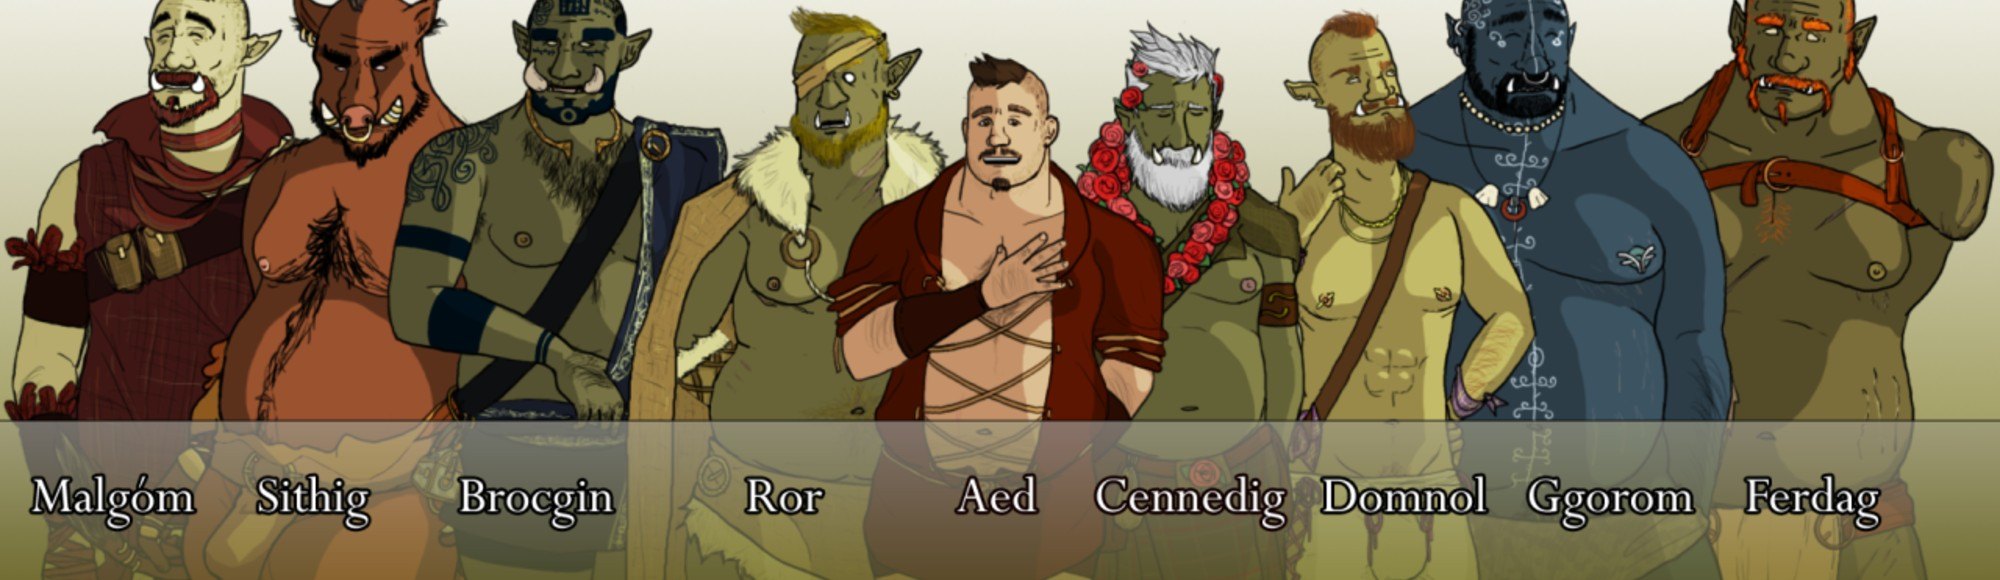 Shadow of Mordor has nothing on the orcs in this dating